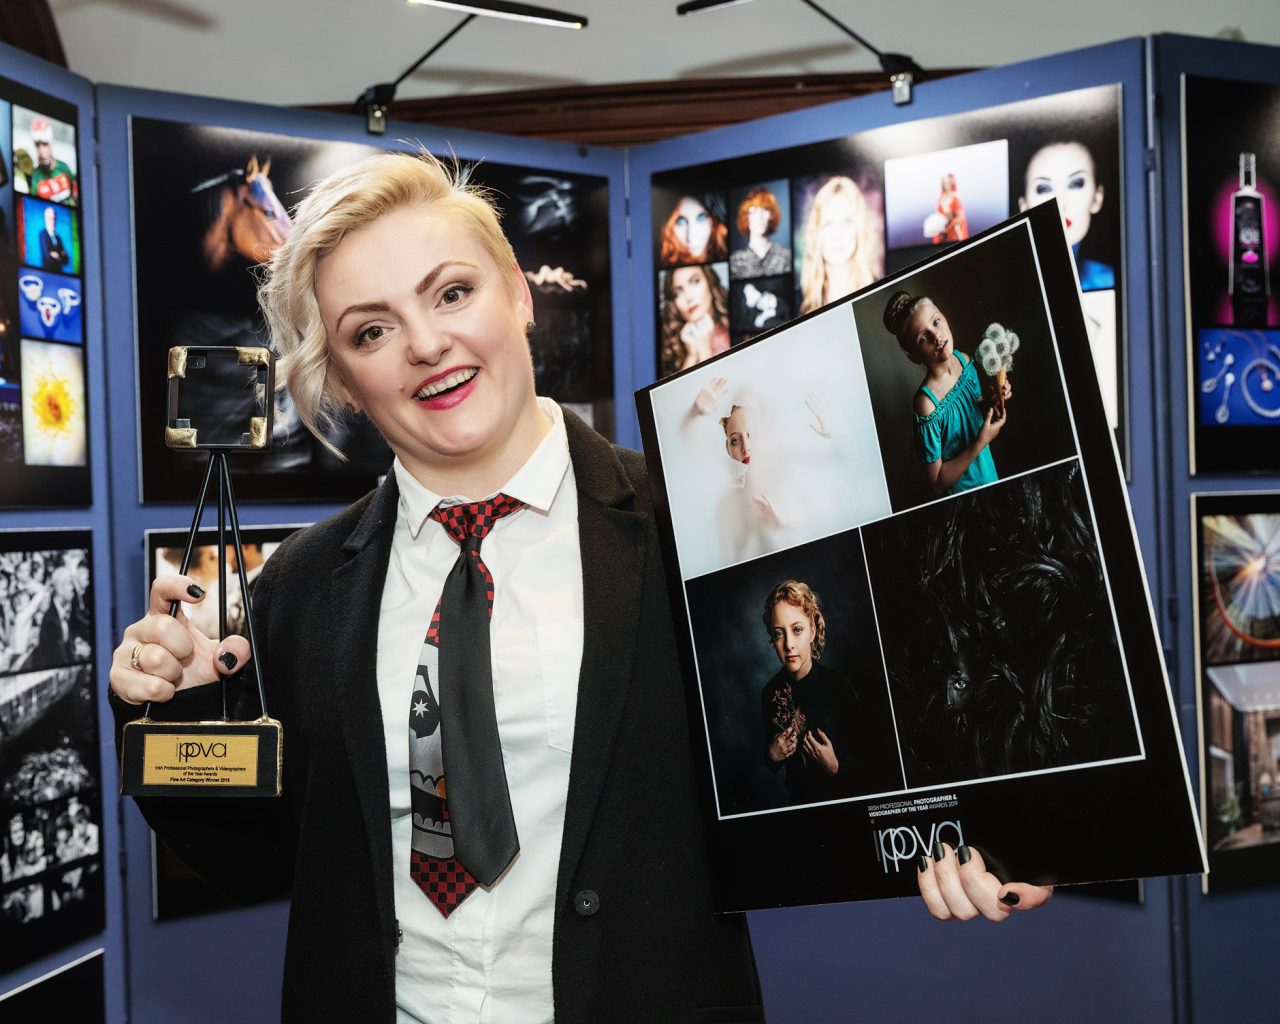 Greta smiling while holding her trophie at the Award Gala in 2019